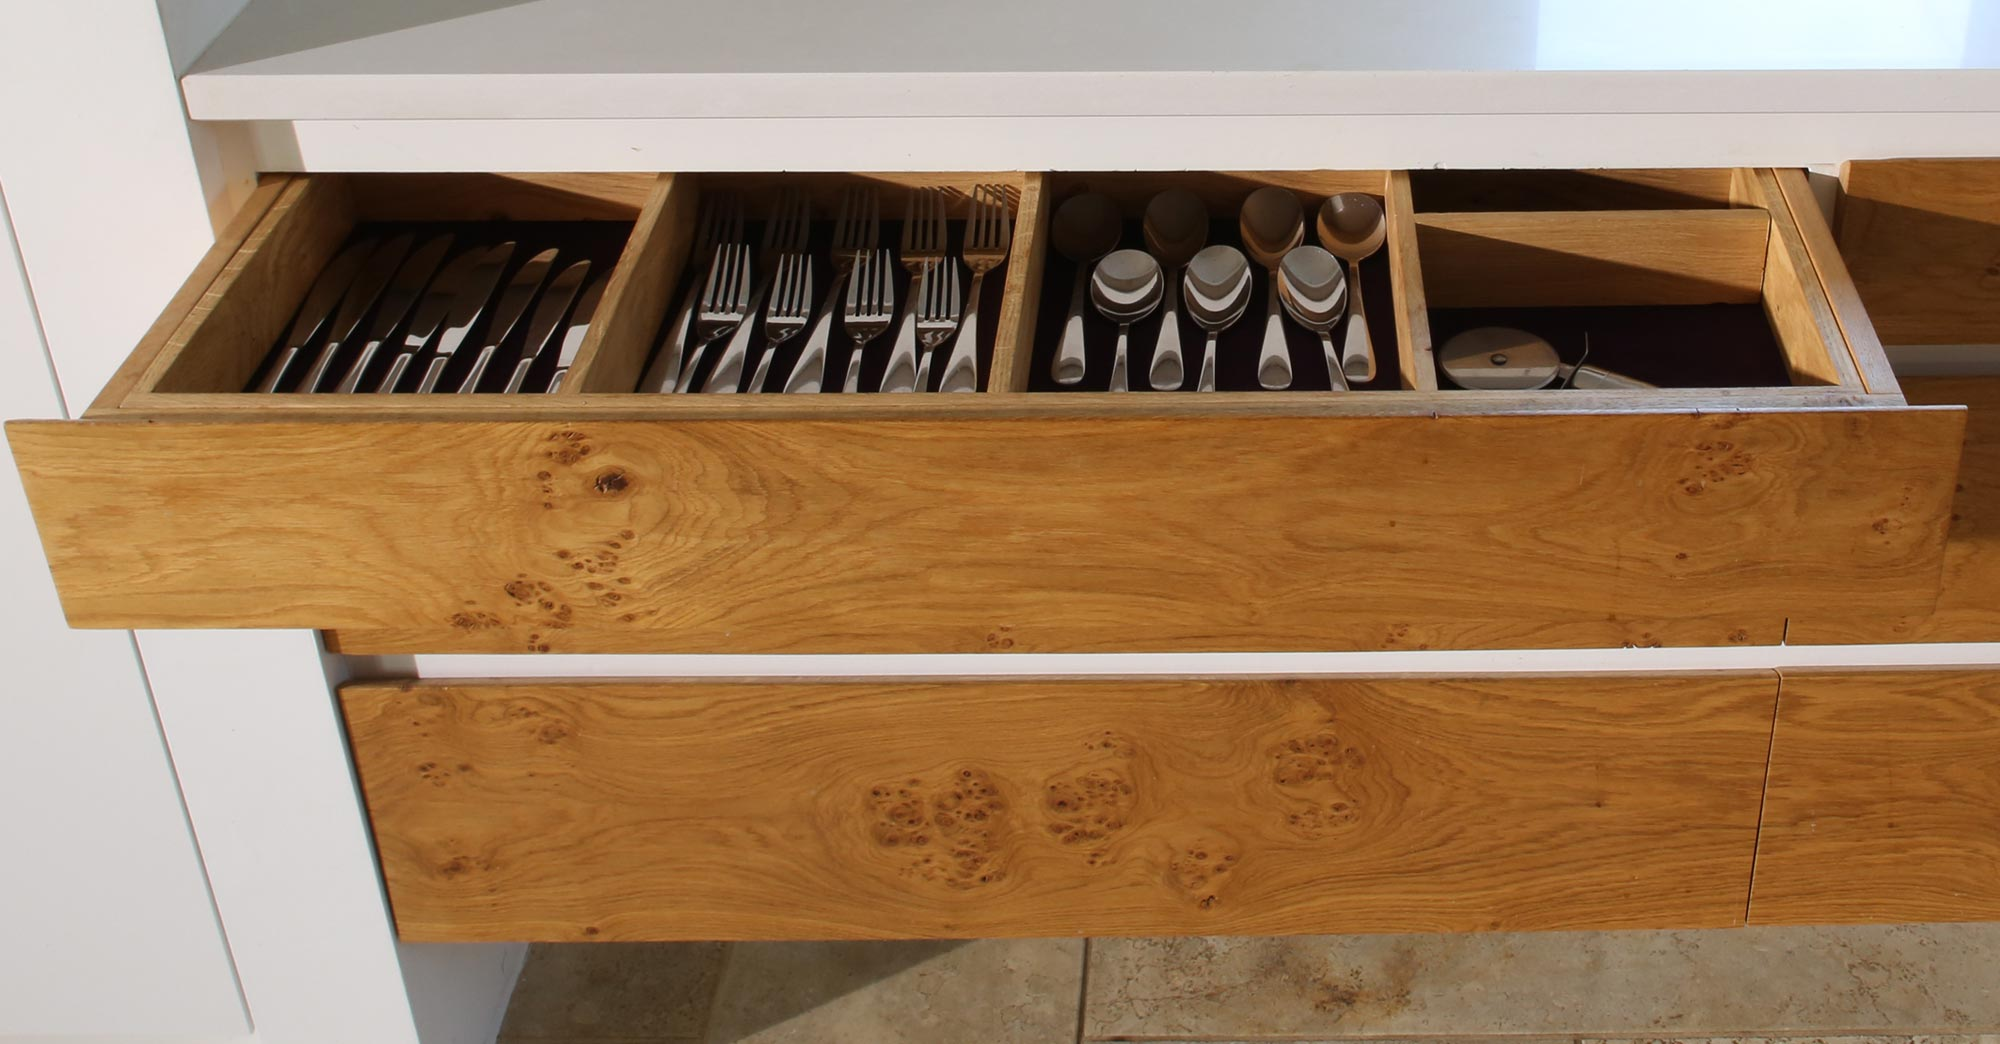 kitchen-worktop-drawers